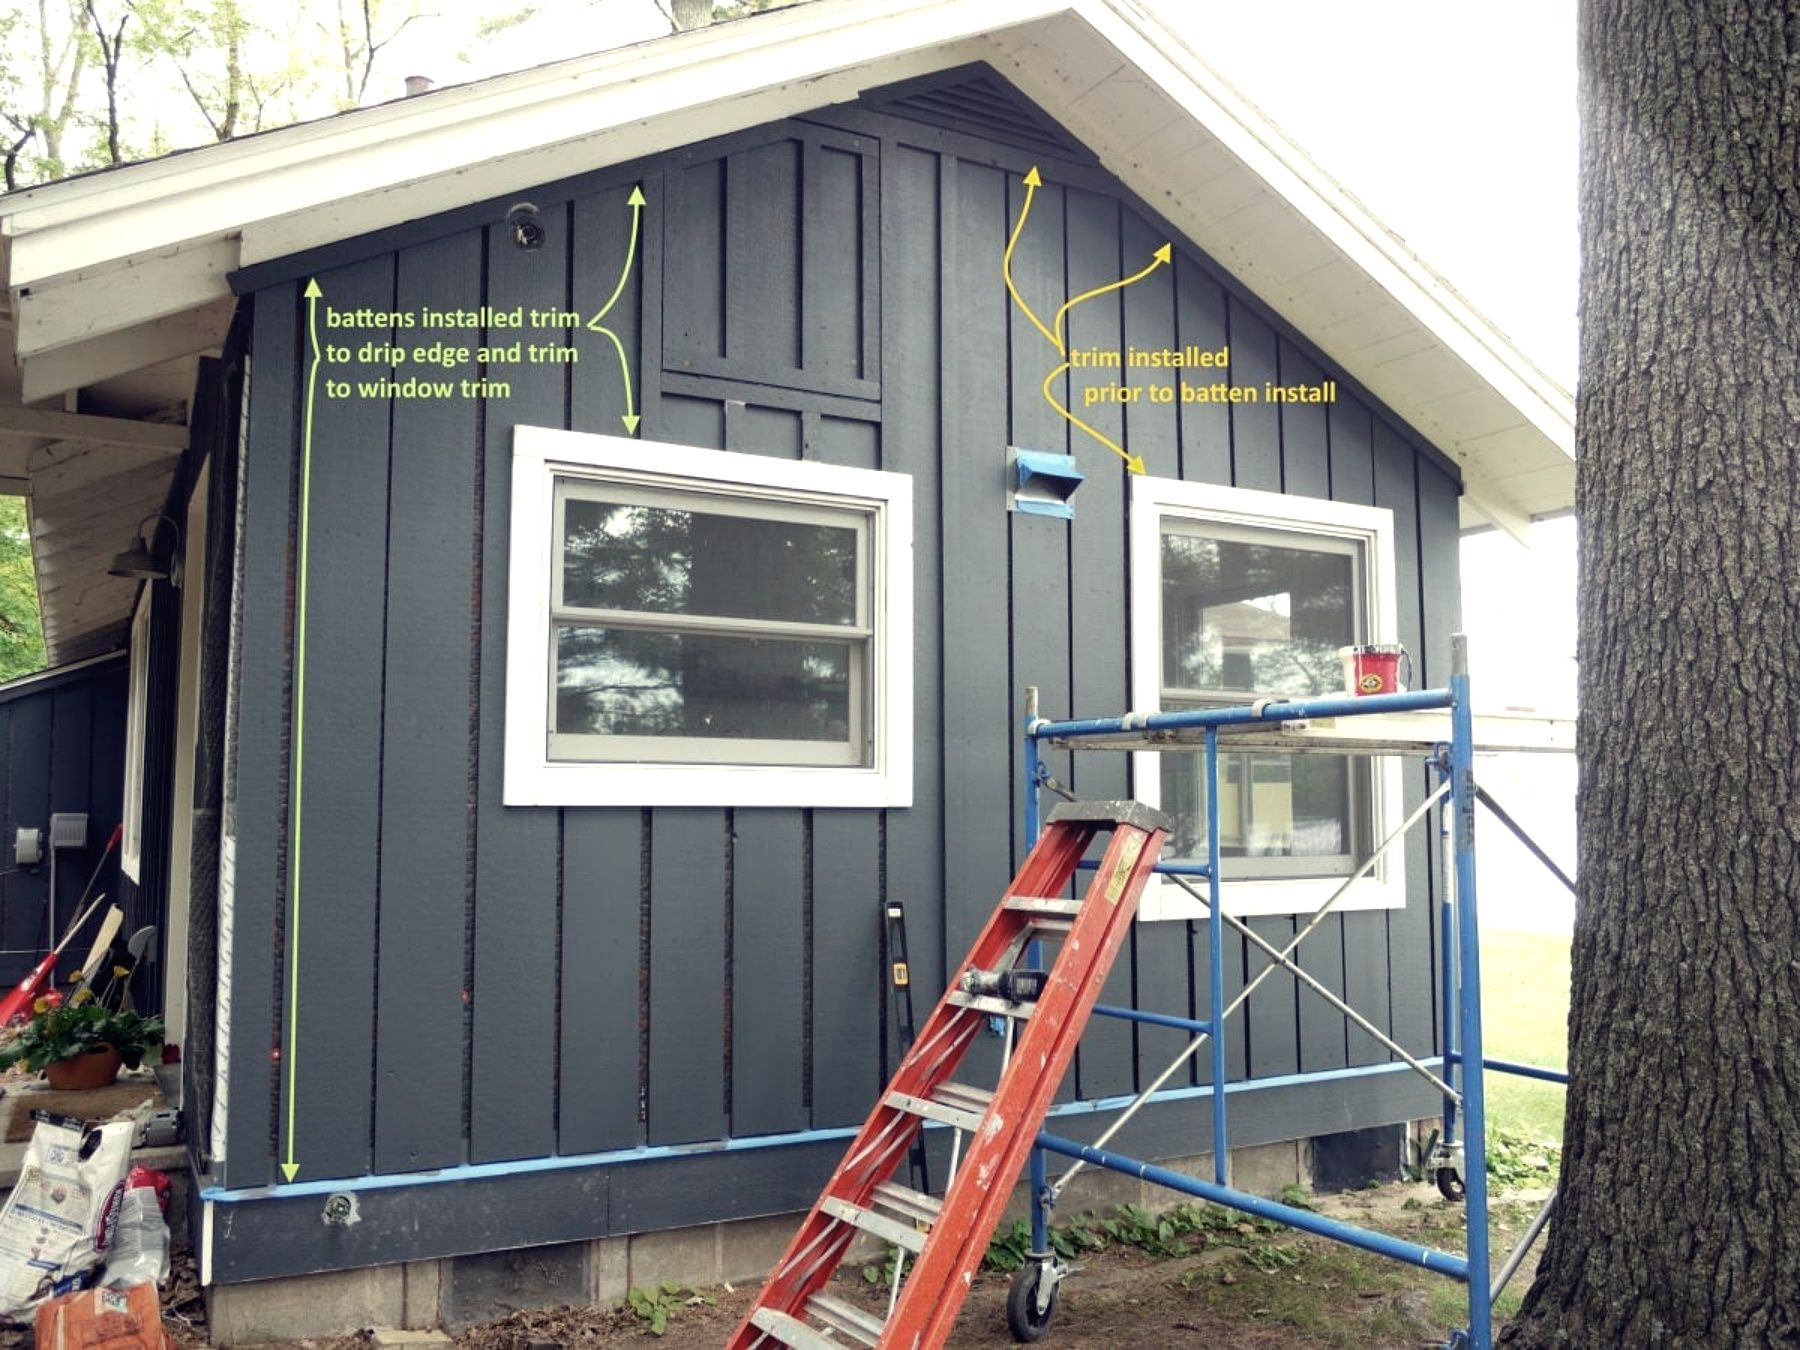 Board And Batten Siding Installing Step By Step Board And Batten Siding Blog In 2020 Board And Batten Siding Board And Batten Exterior Clapboard Siding